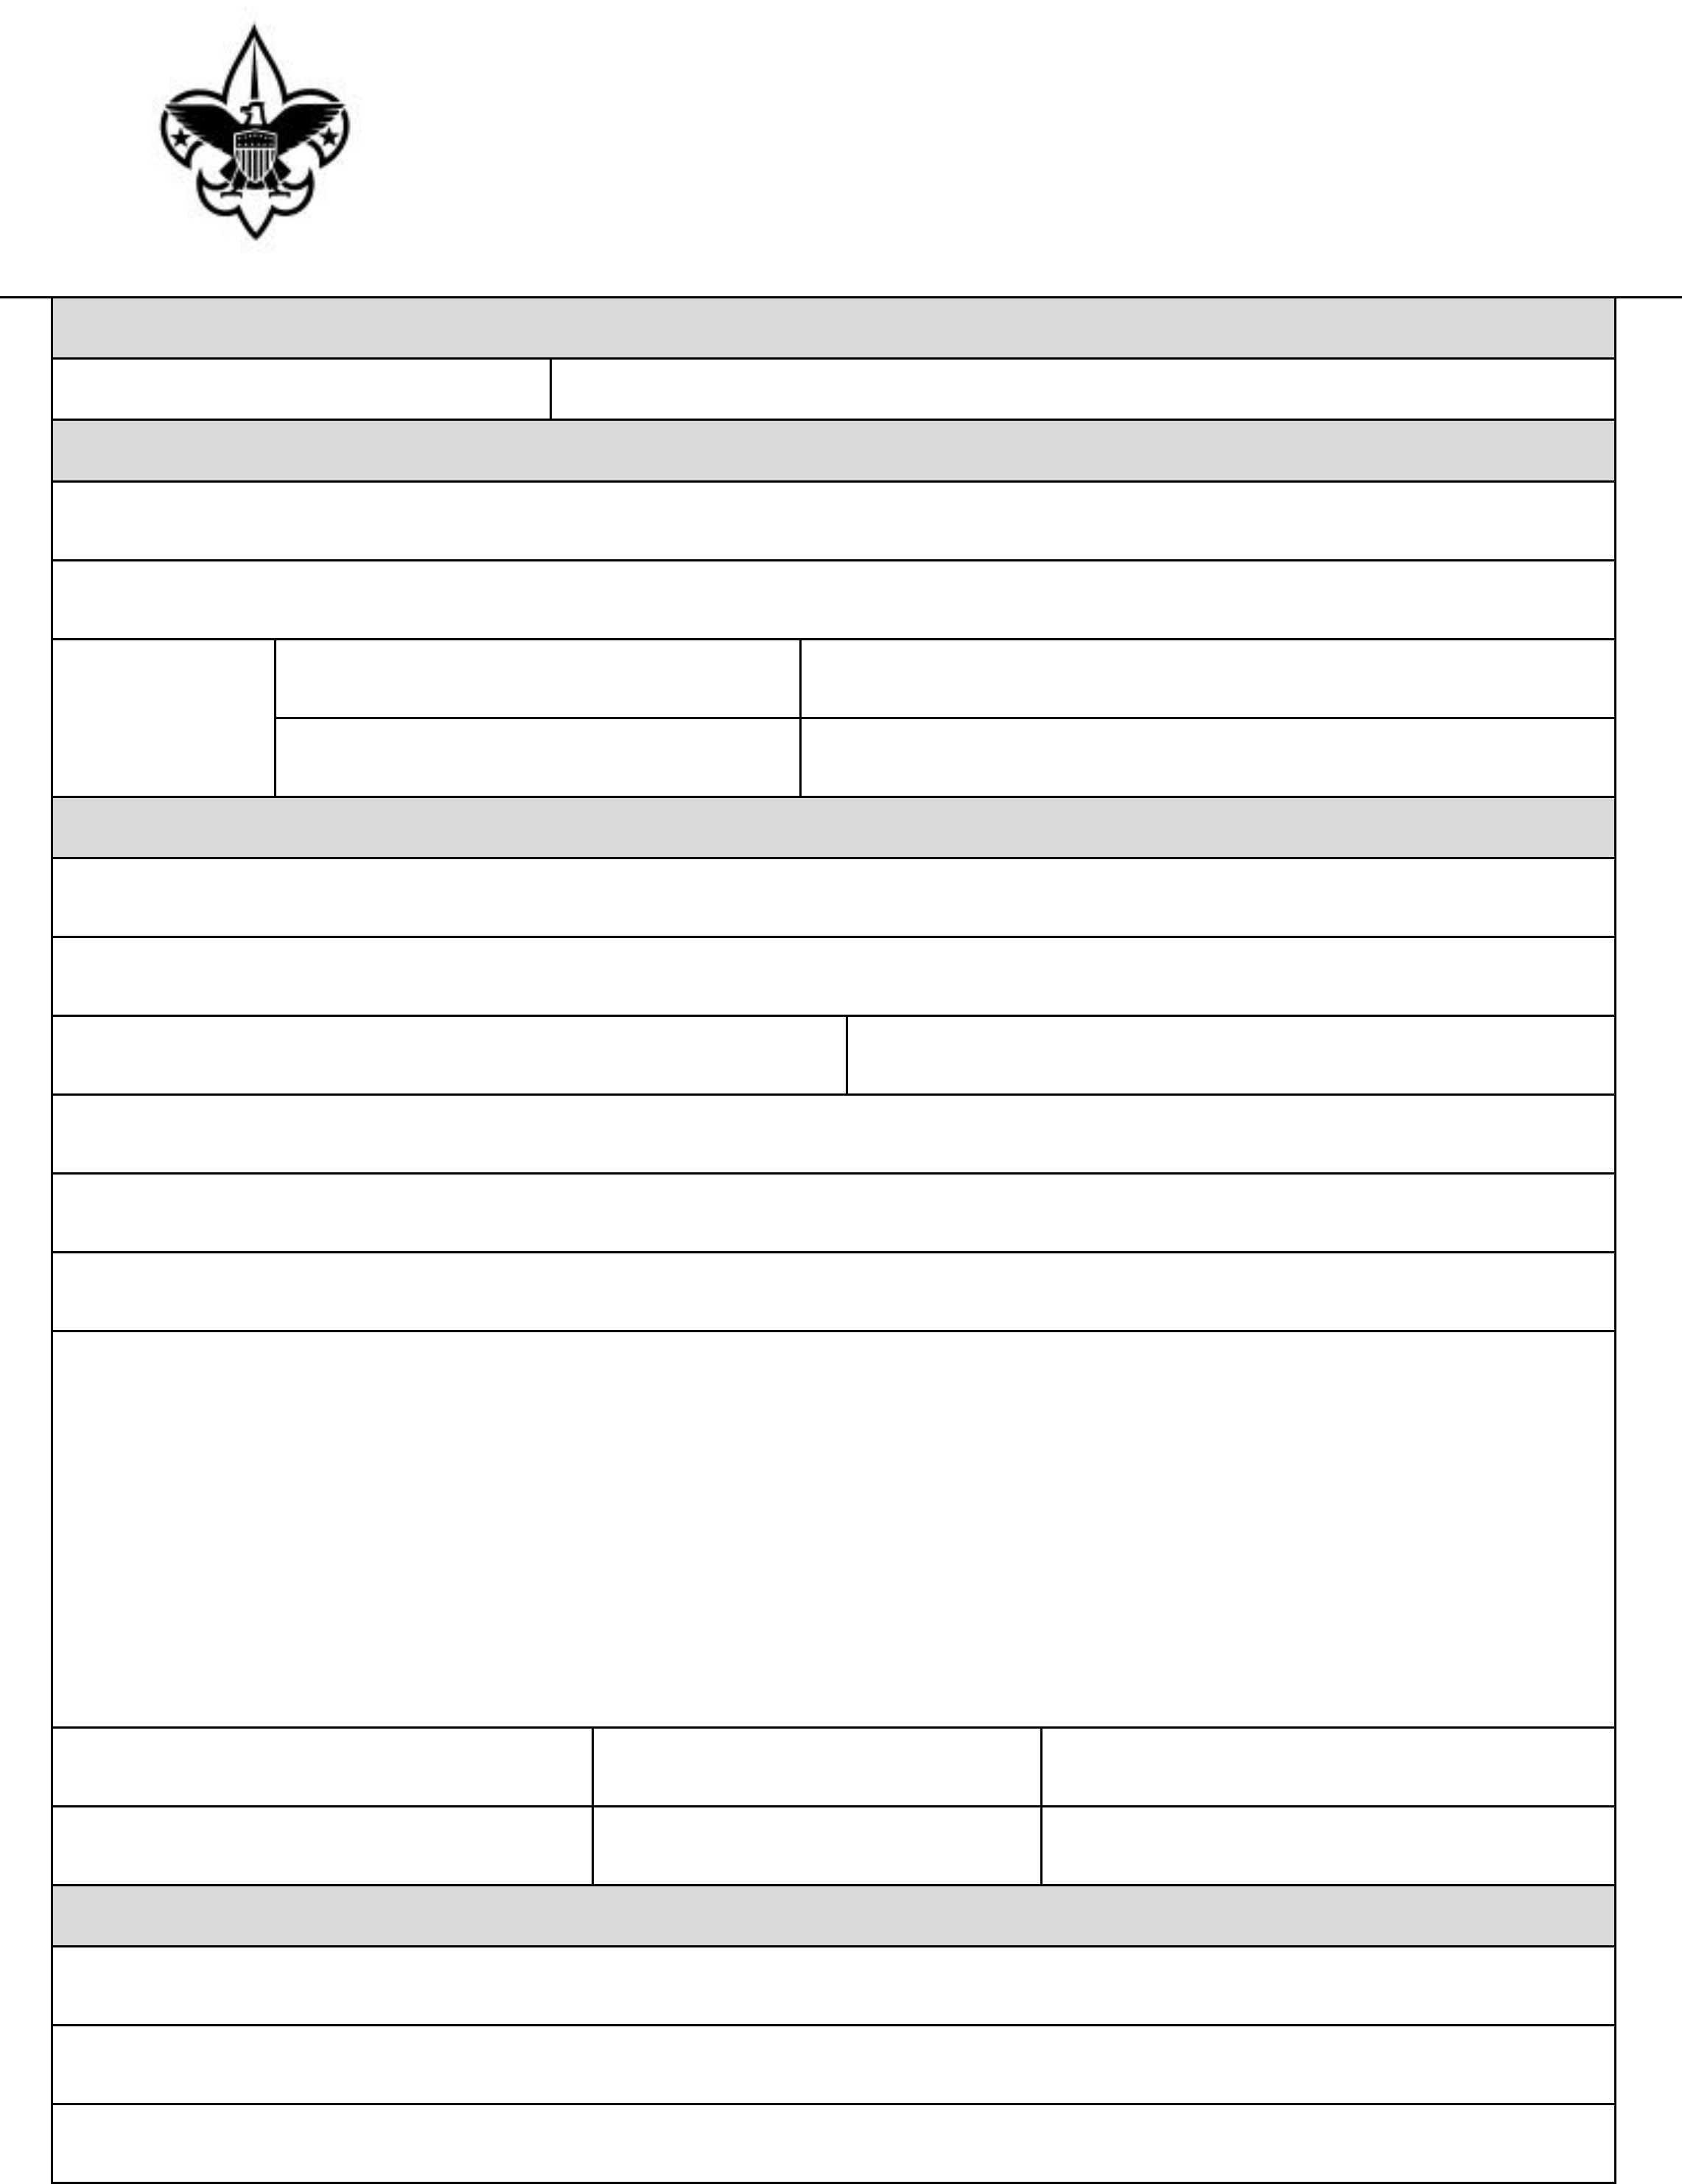 standard incident report form free download